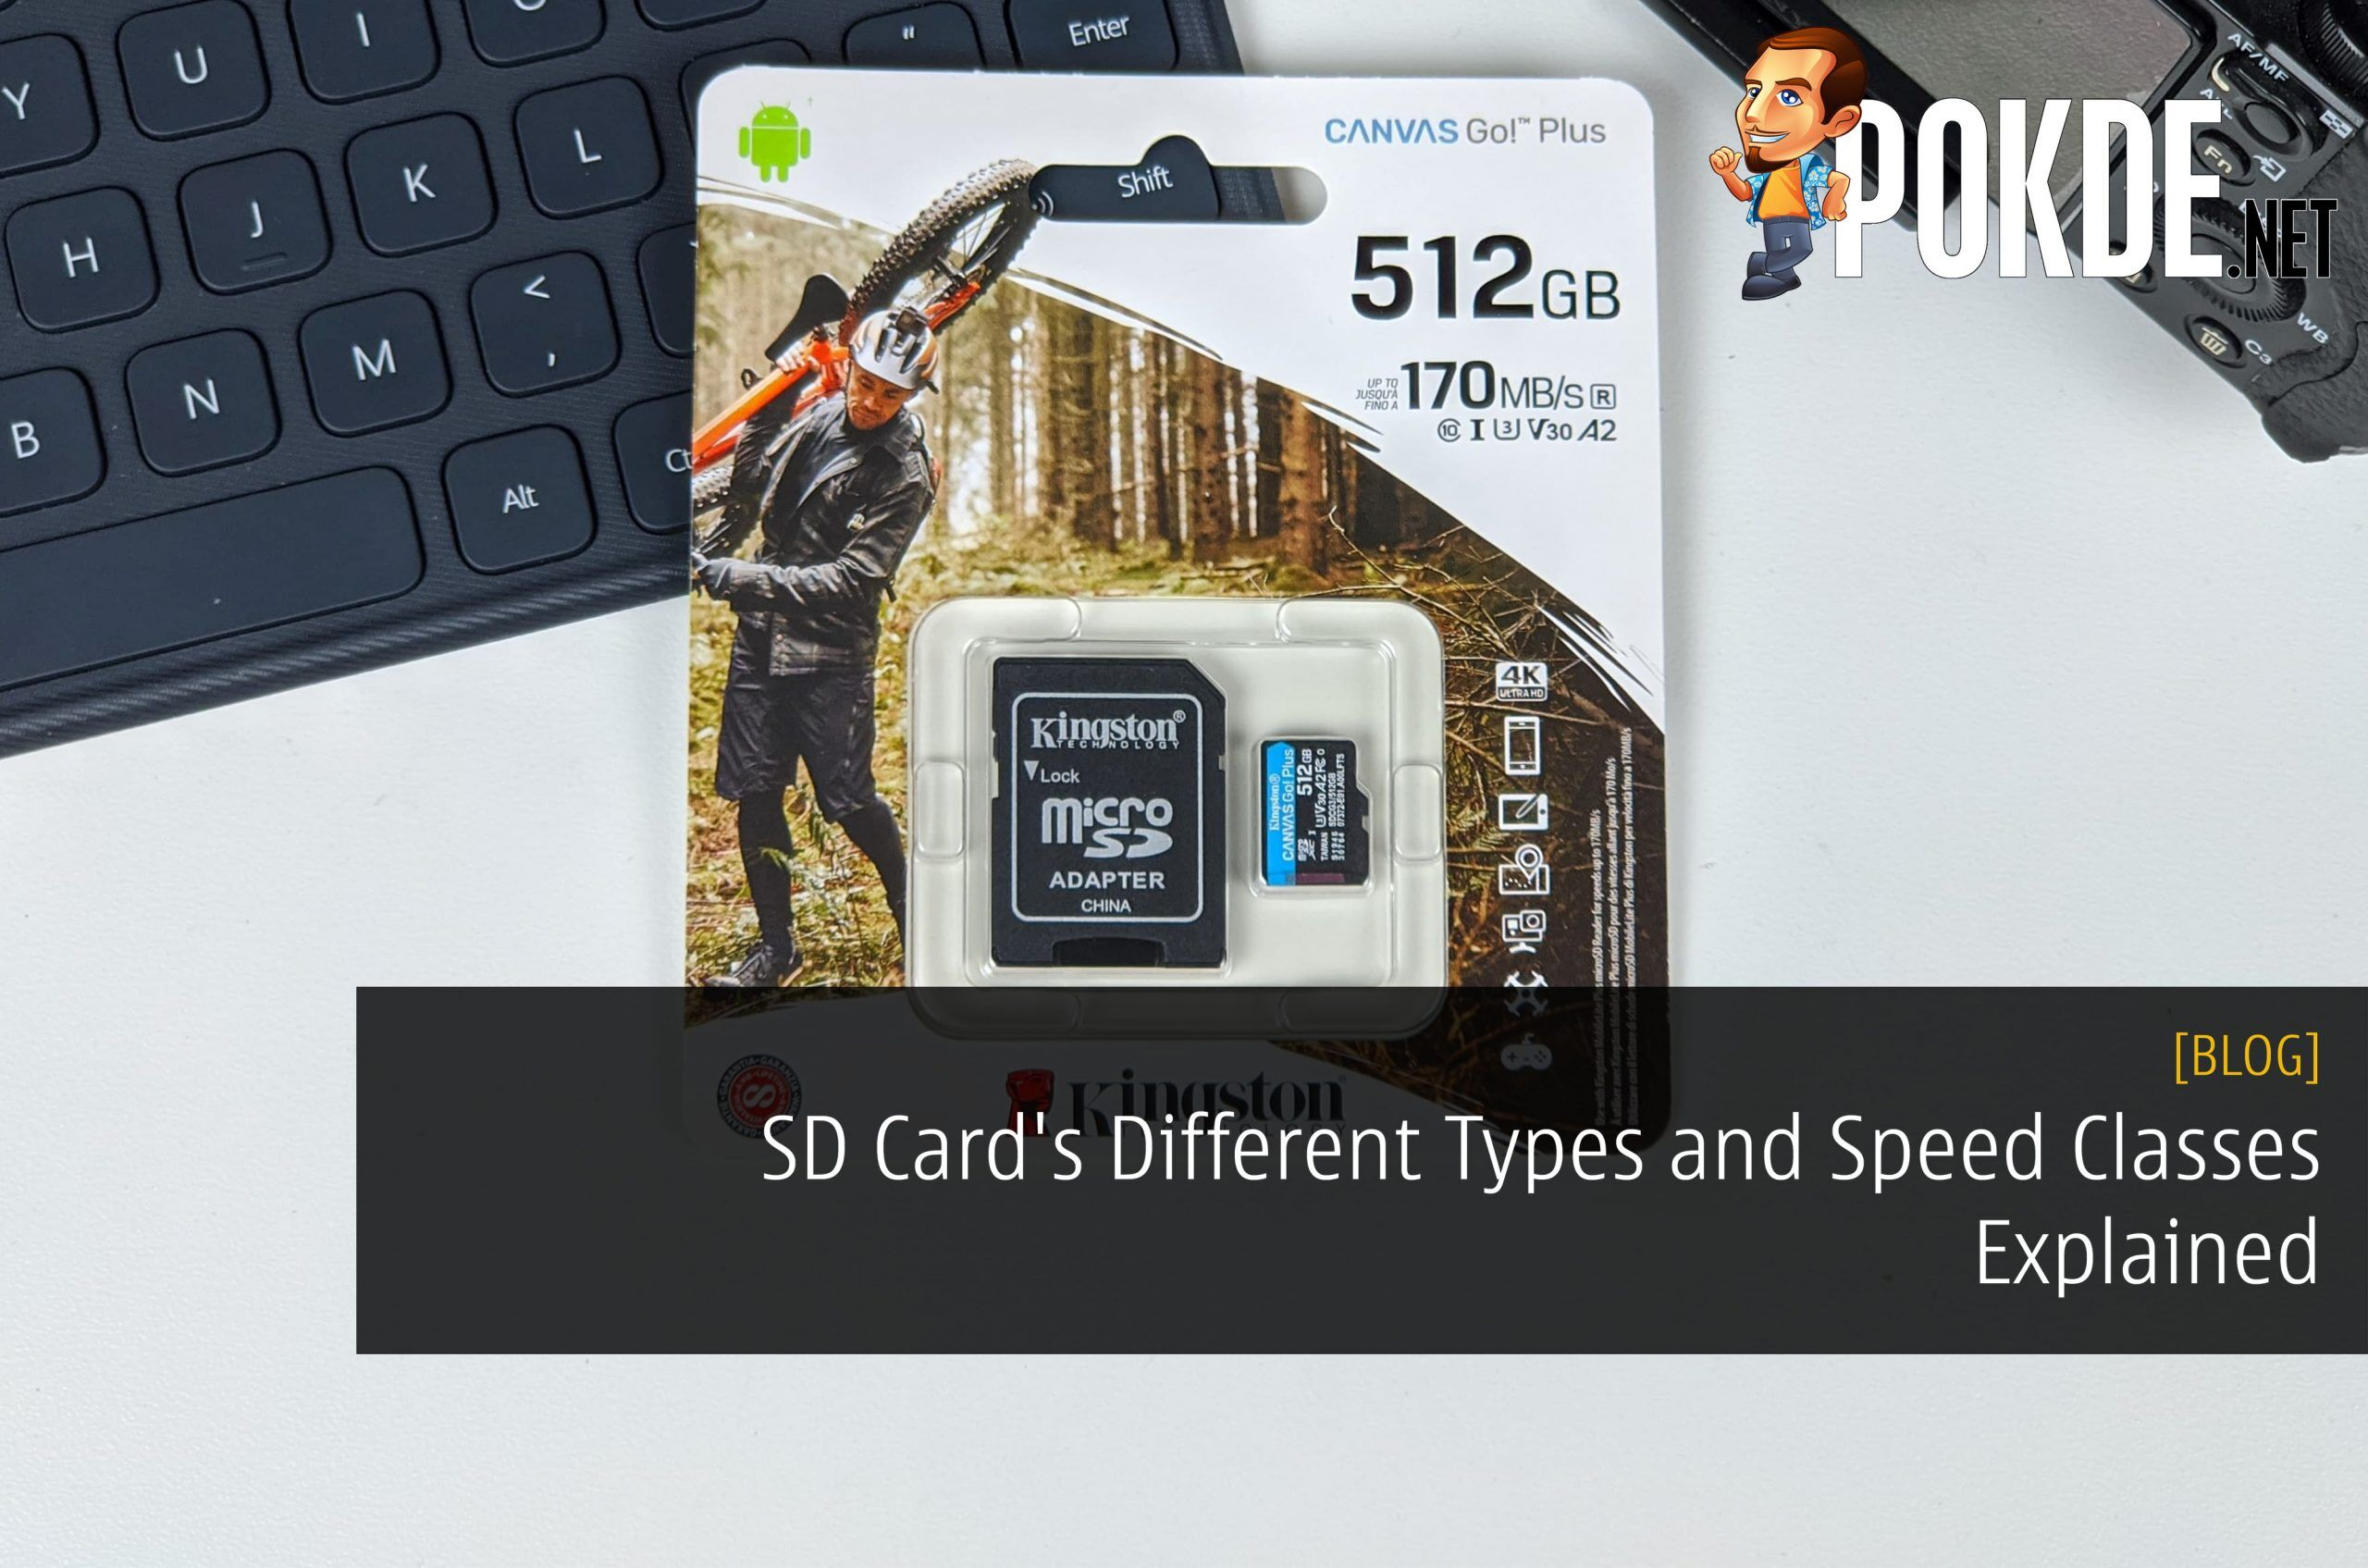 SD Card's Different Types and Speed Classes Explained 9